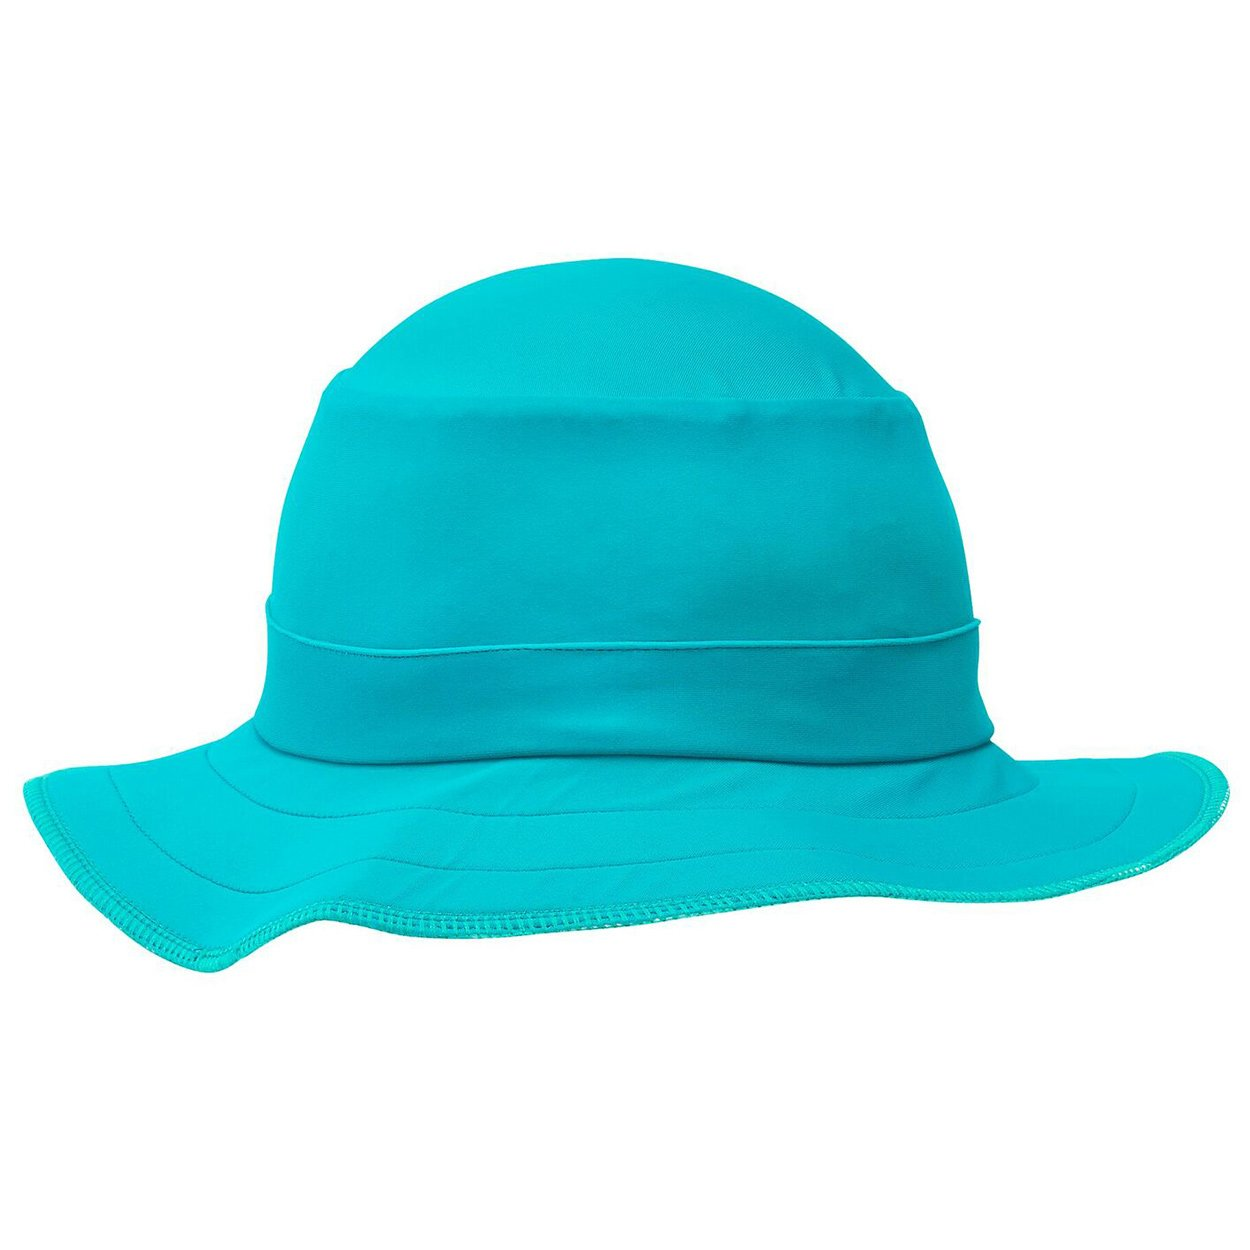 Kids Funky Bucket Hat size SMALL (2-10 years) by Swimlids